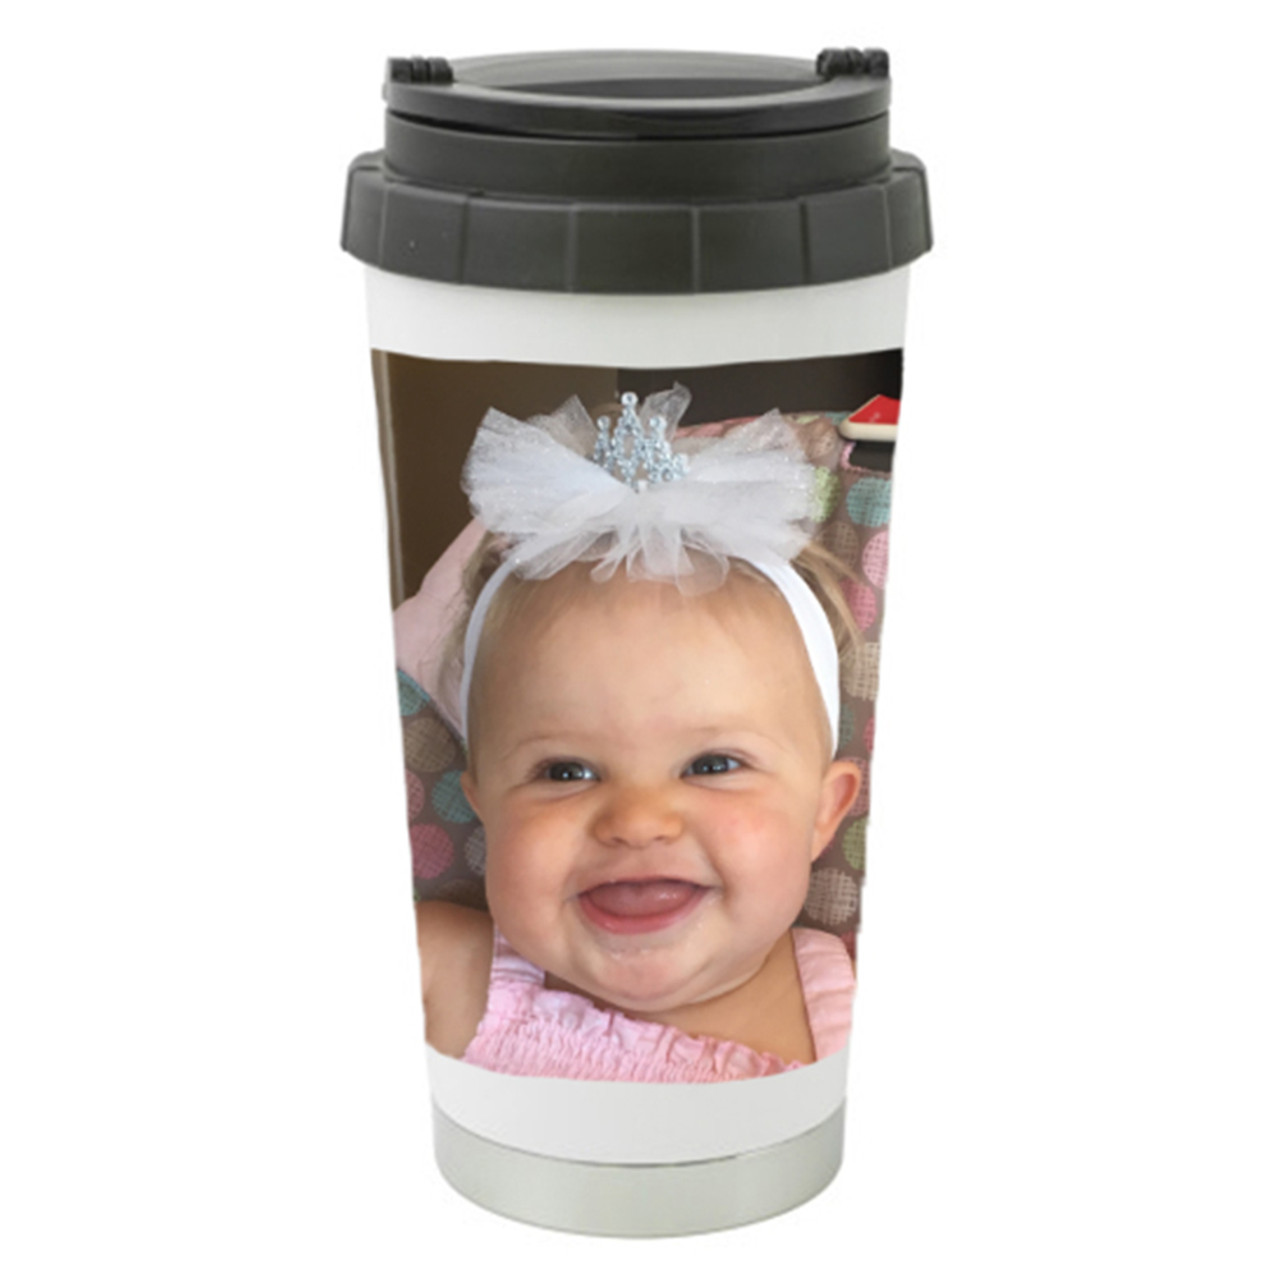 Awesome Phlebotomists Personalized Travel Mugs Travel Personalized Add Your Own Photo Name Custom Personalized Travel Mugs Add Your Own Photo Name Personalized Travel Mugs Churches inspiration Personalized Travel Mugs